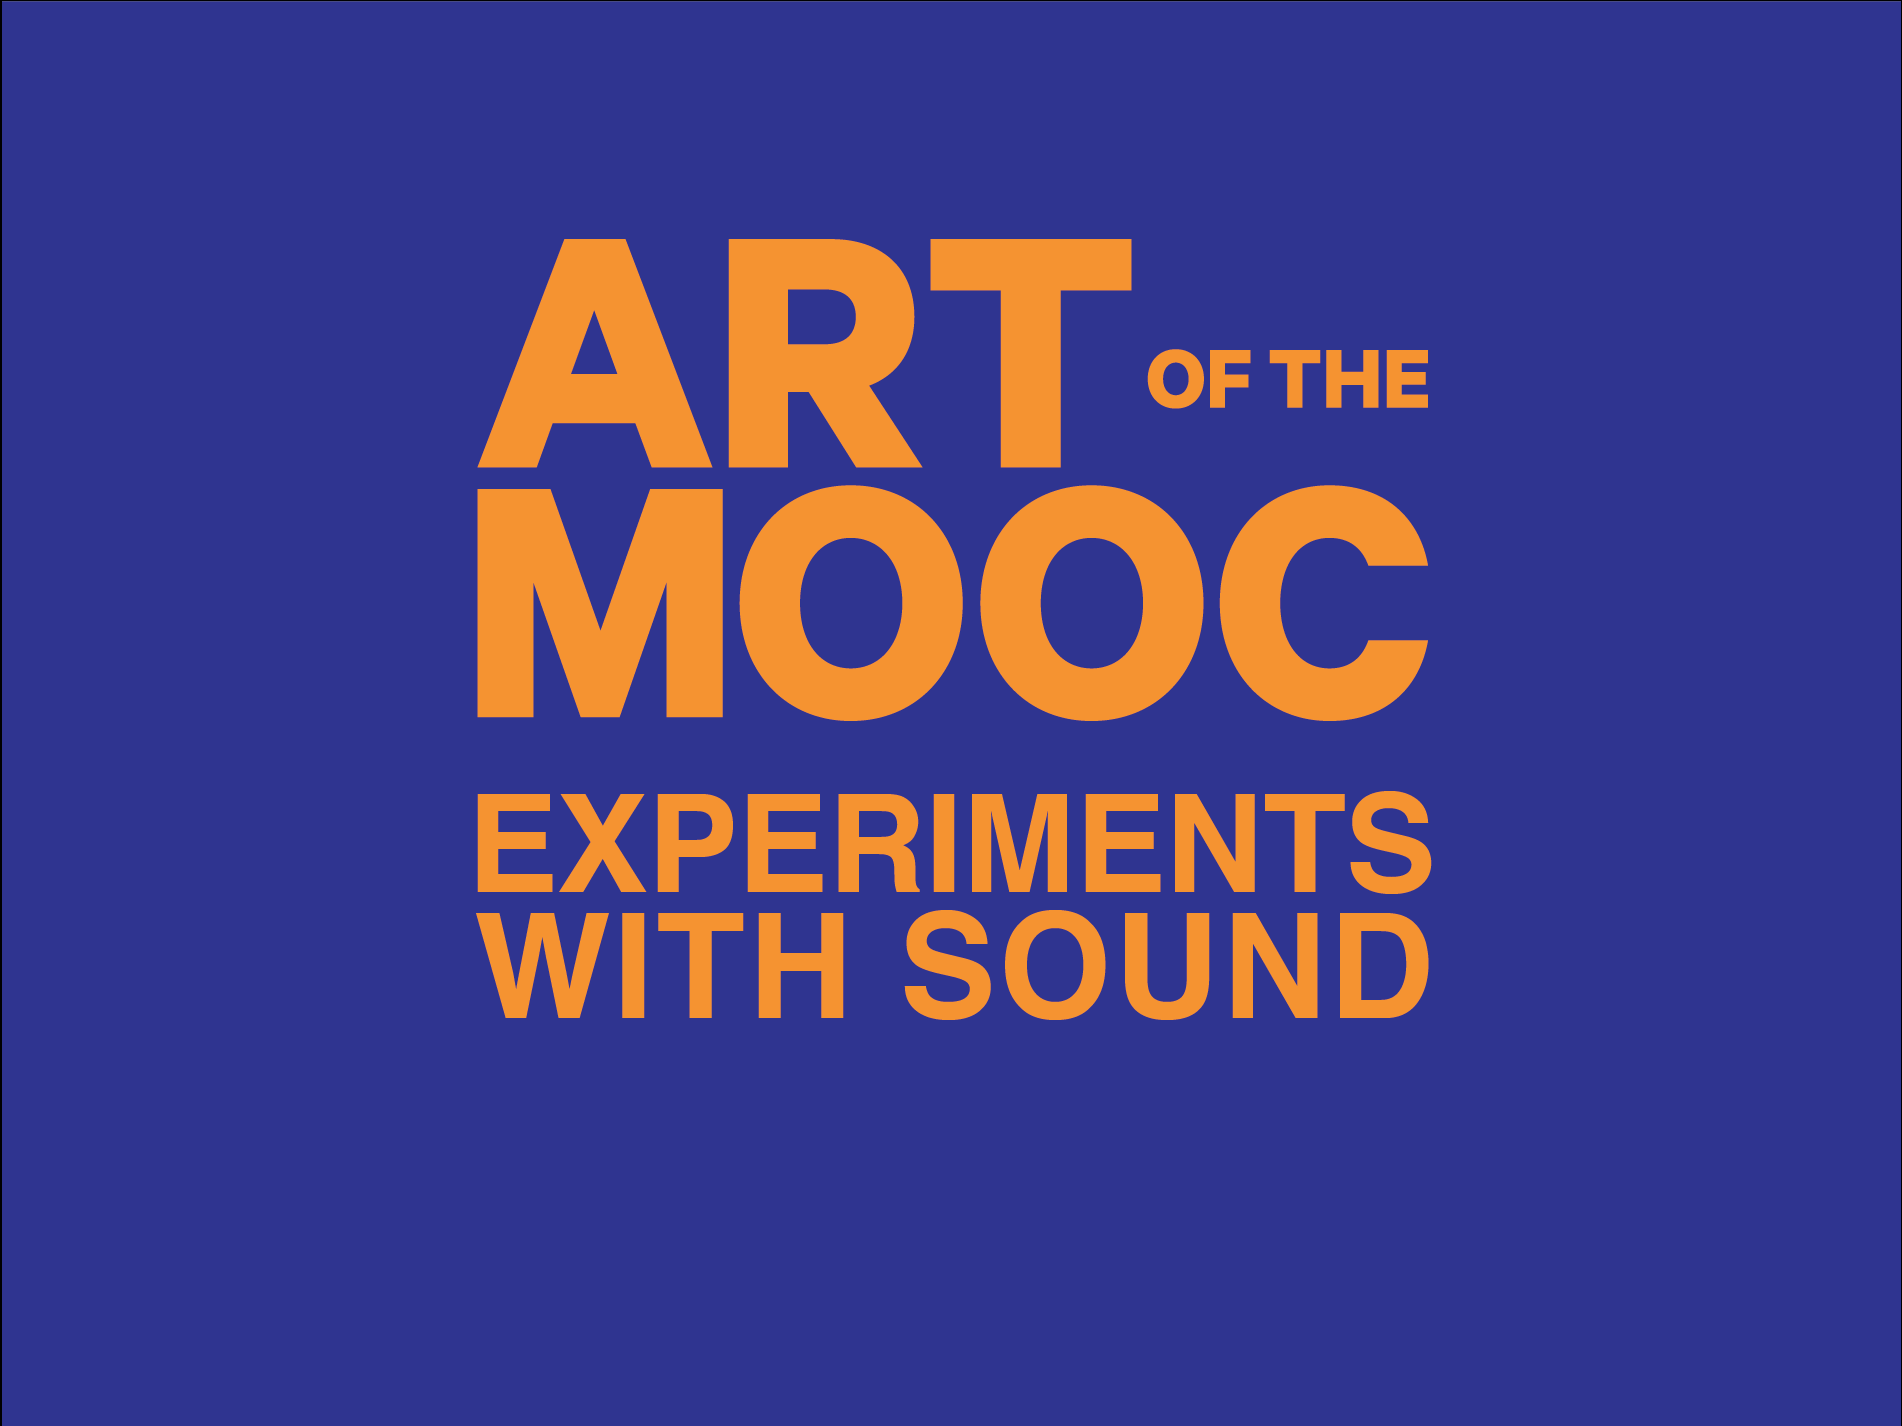 Global Launch for the new ART of MOOC: Experiments with Sound